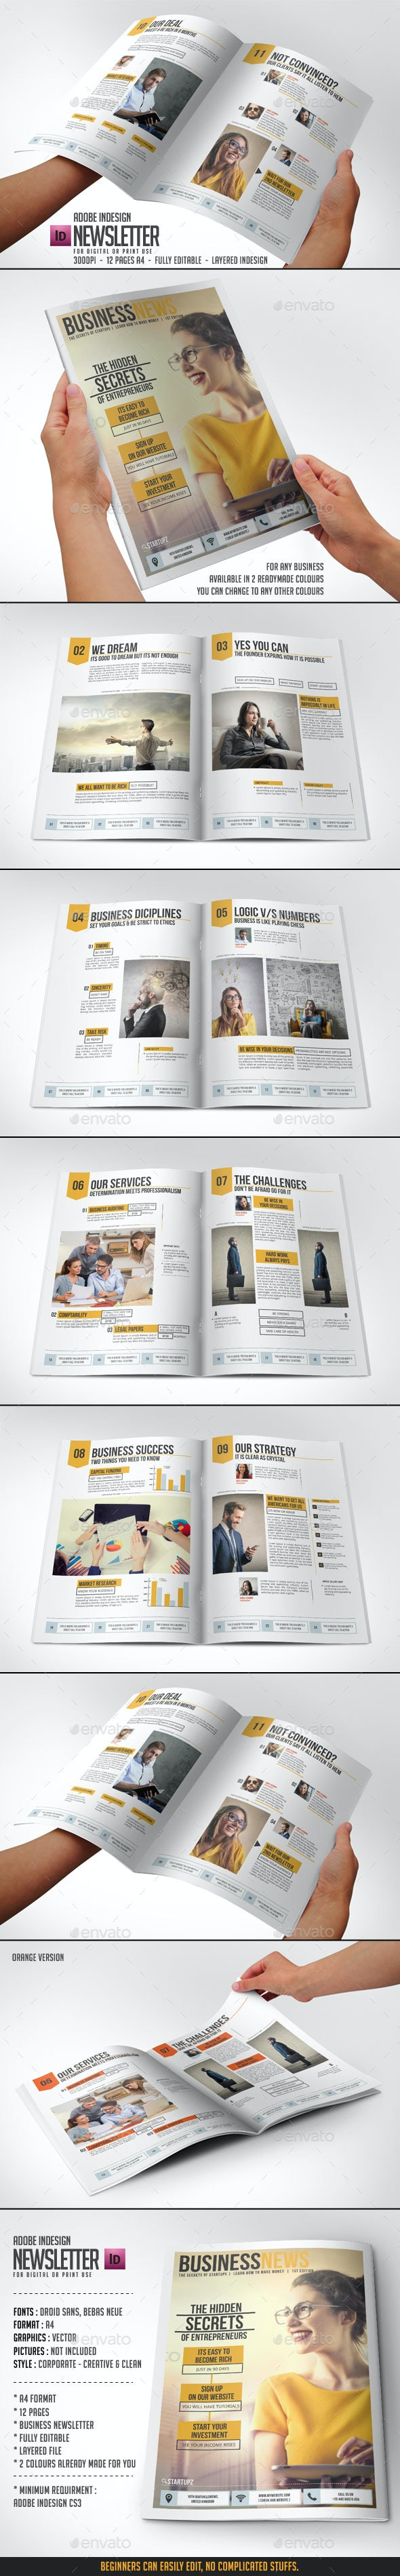 Newsletter Indesign Vol2 - Newsletters Print Templates